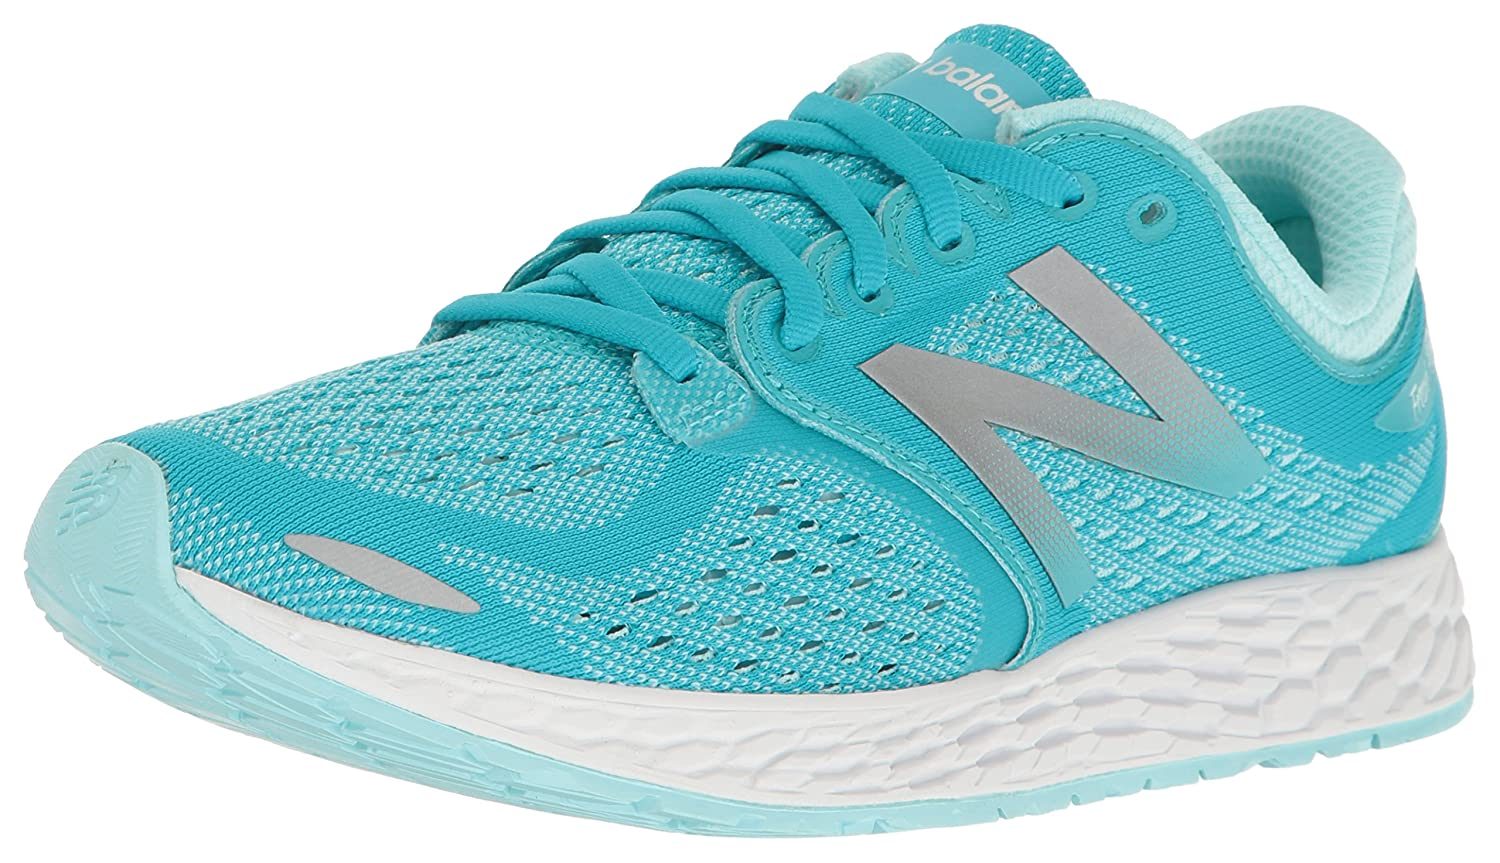 New Balance Women's ZanteV2 Breathe Running Shoe B01LZL1OOZ 8.5 B(M) US|Vivid Ozone Blue/White